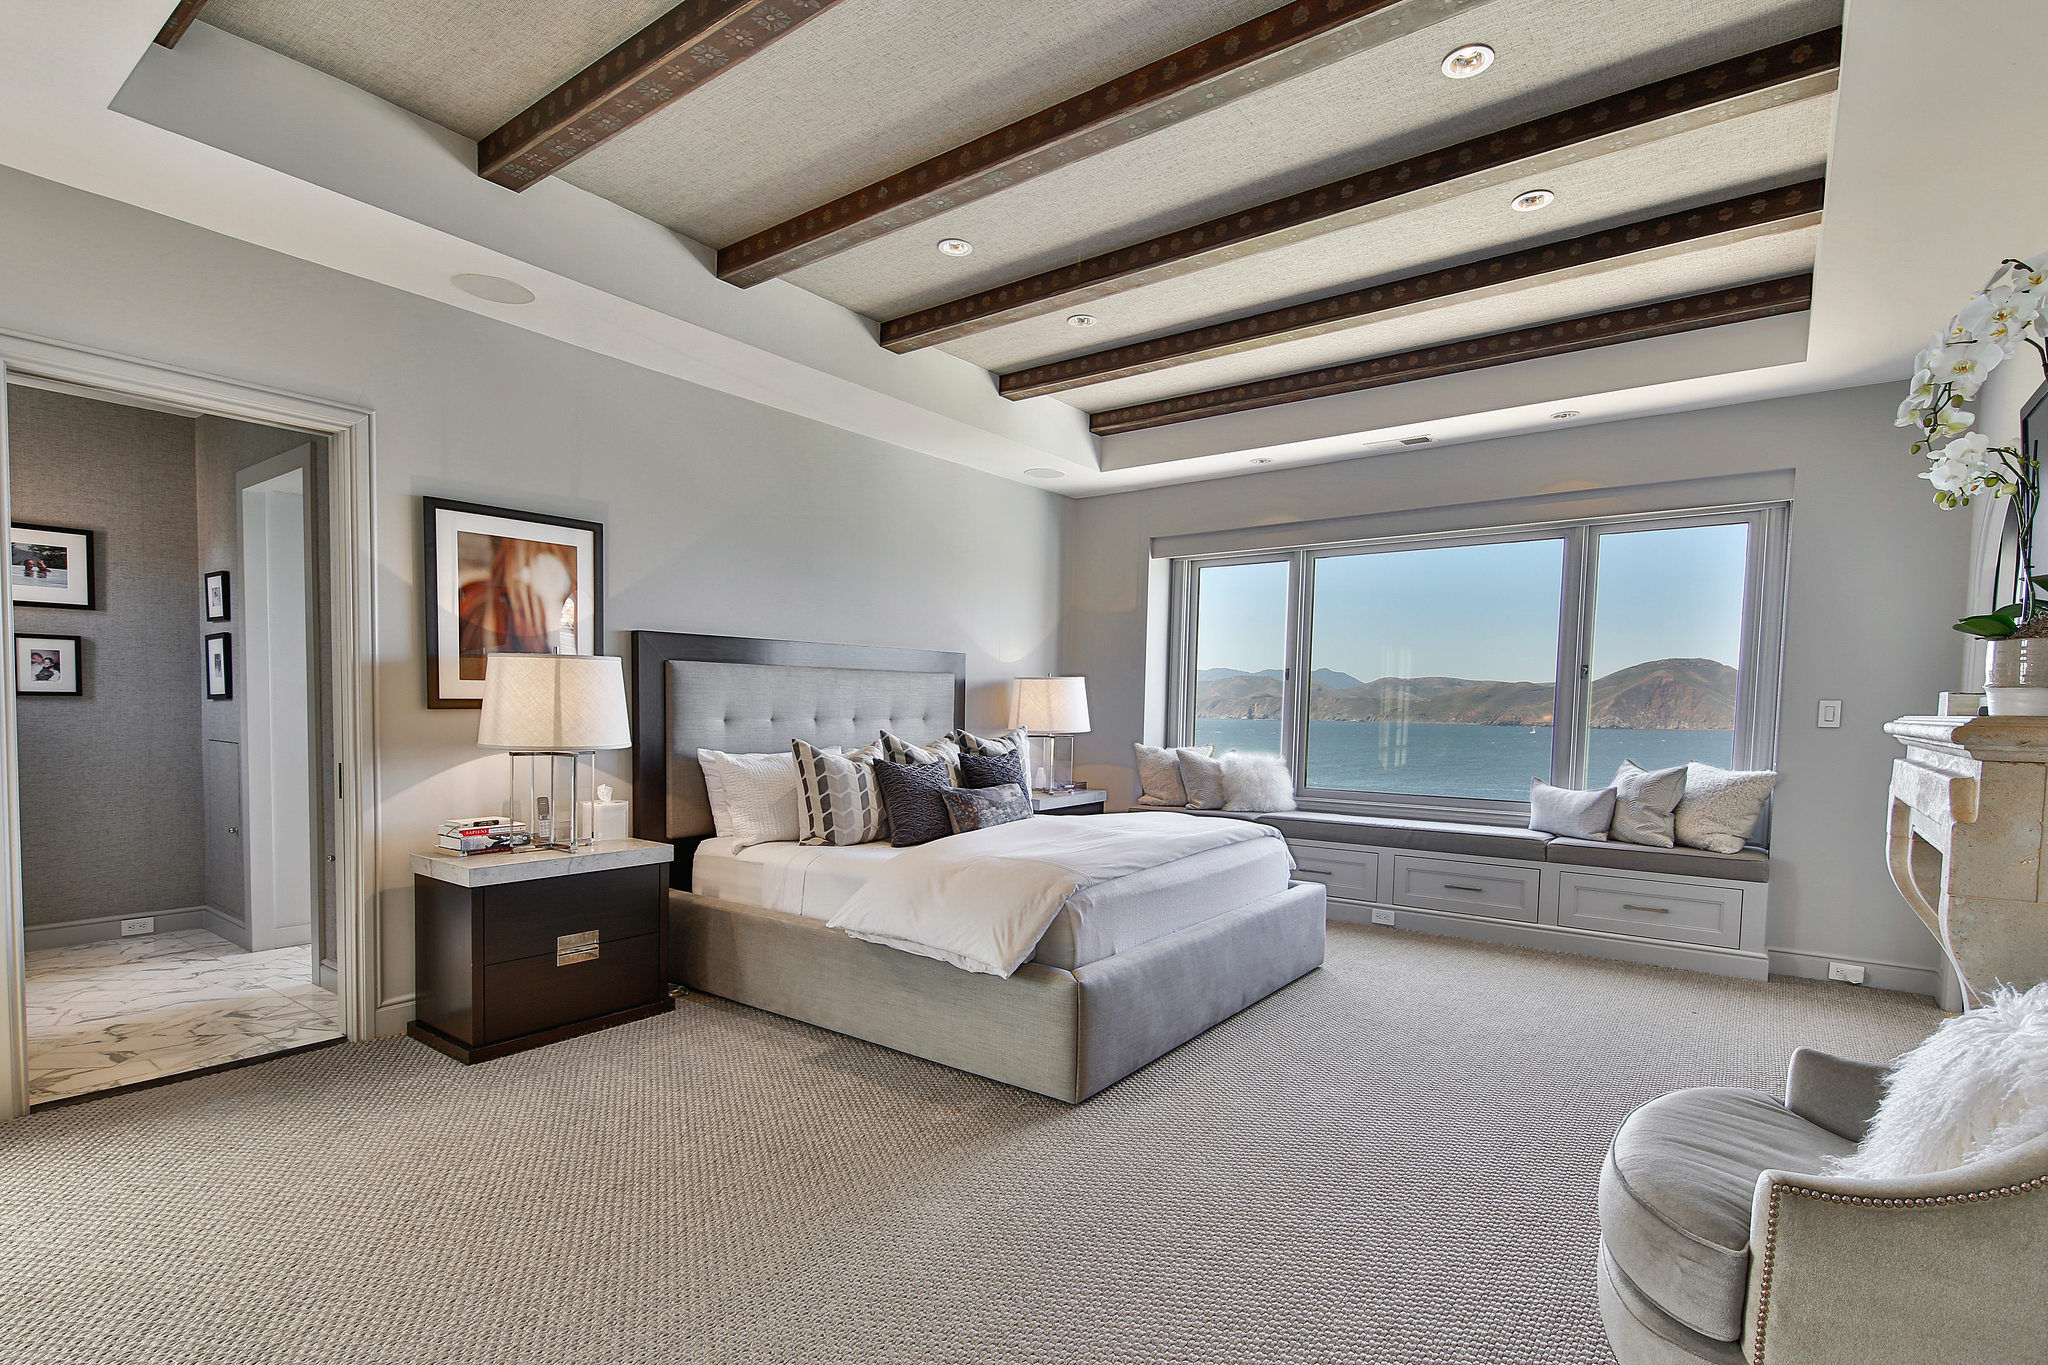 A bedroom suite with an incredible view.